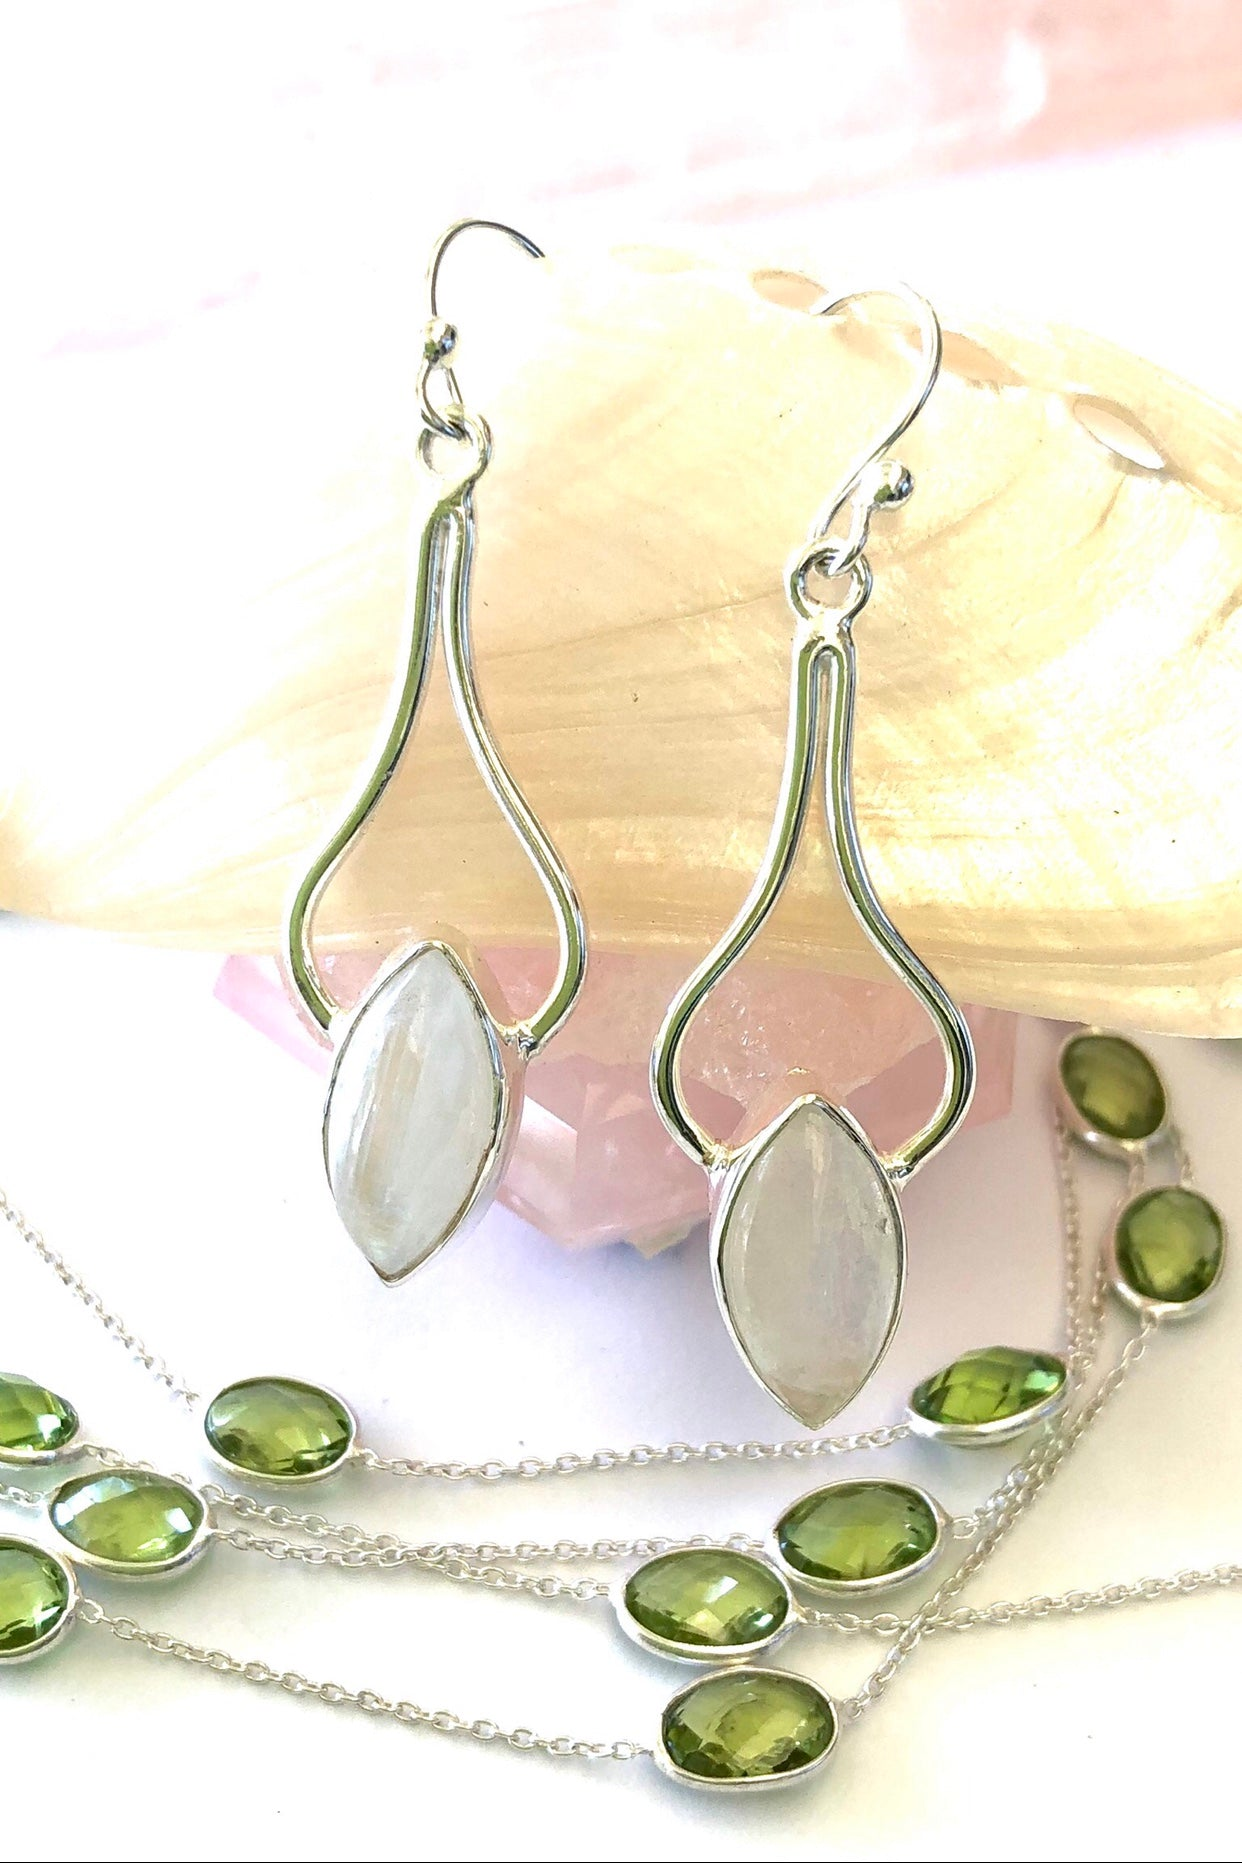 moonstone gemstone in a silver earring